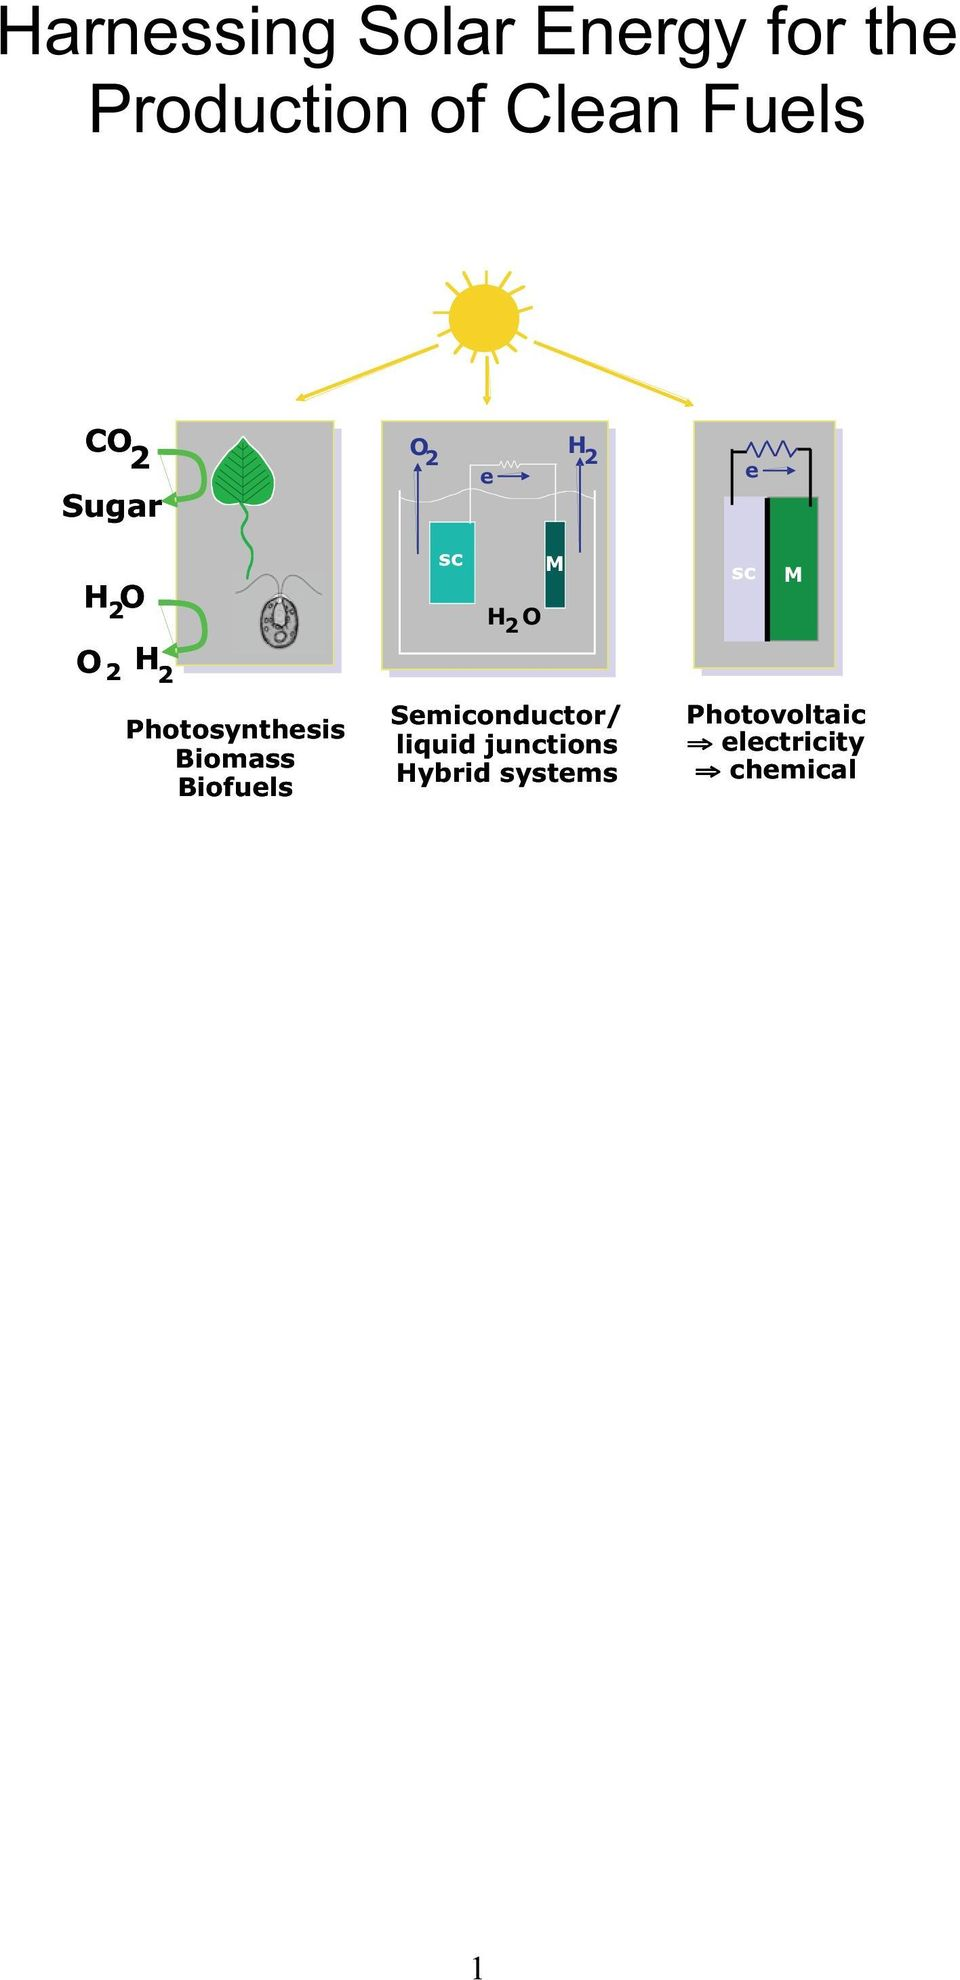 Photosynthesis Biomass Biofuels sc M H 2 O